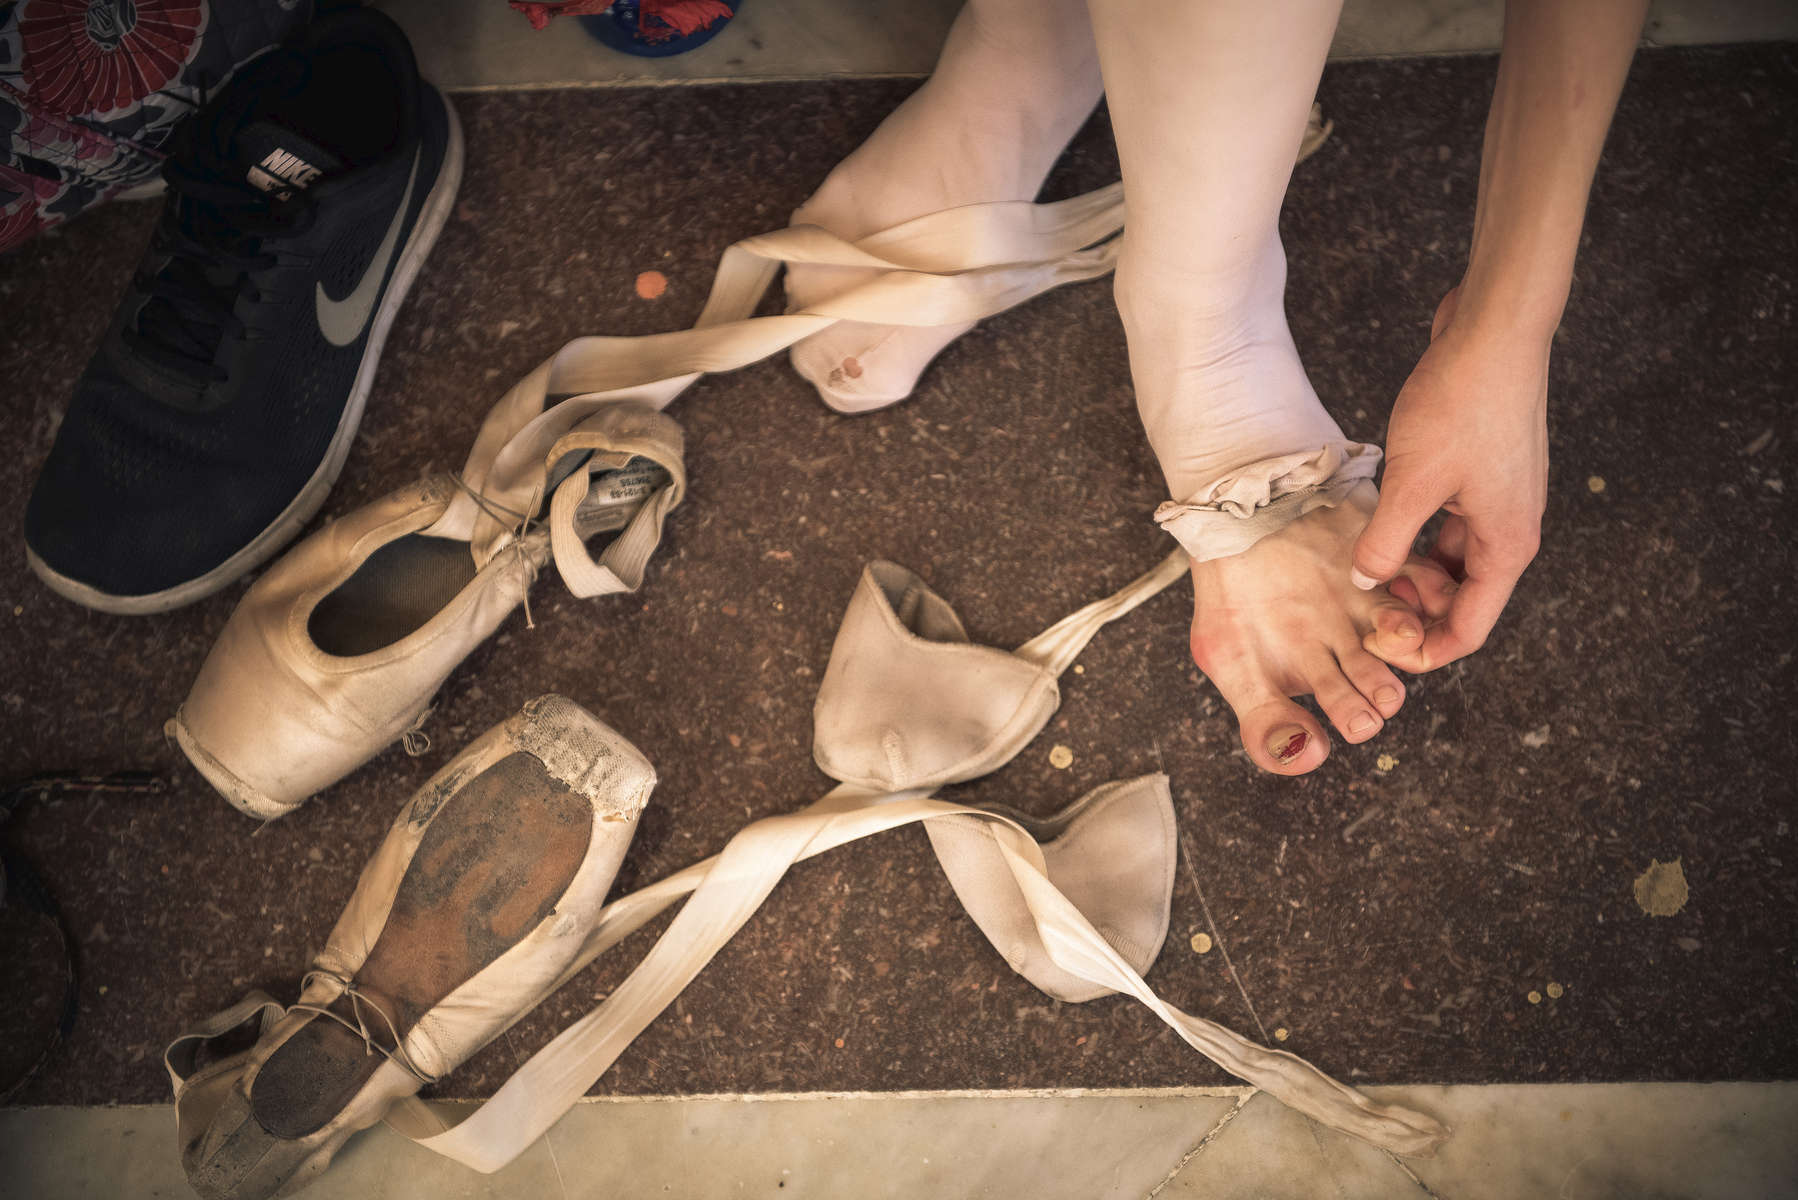 Catherine Conley tends to her feet after removing her pointe shoes after class at the Cuban National School of Ballet in Havana, March 10, 2017. ©2018 Alex Garcia